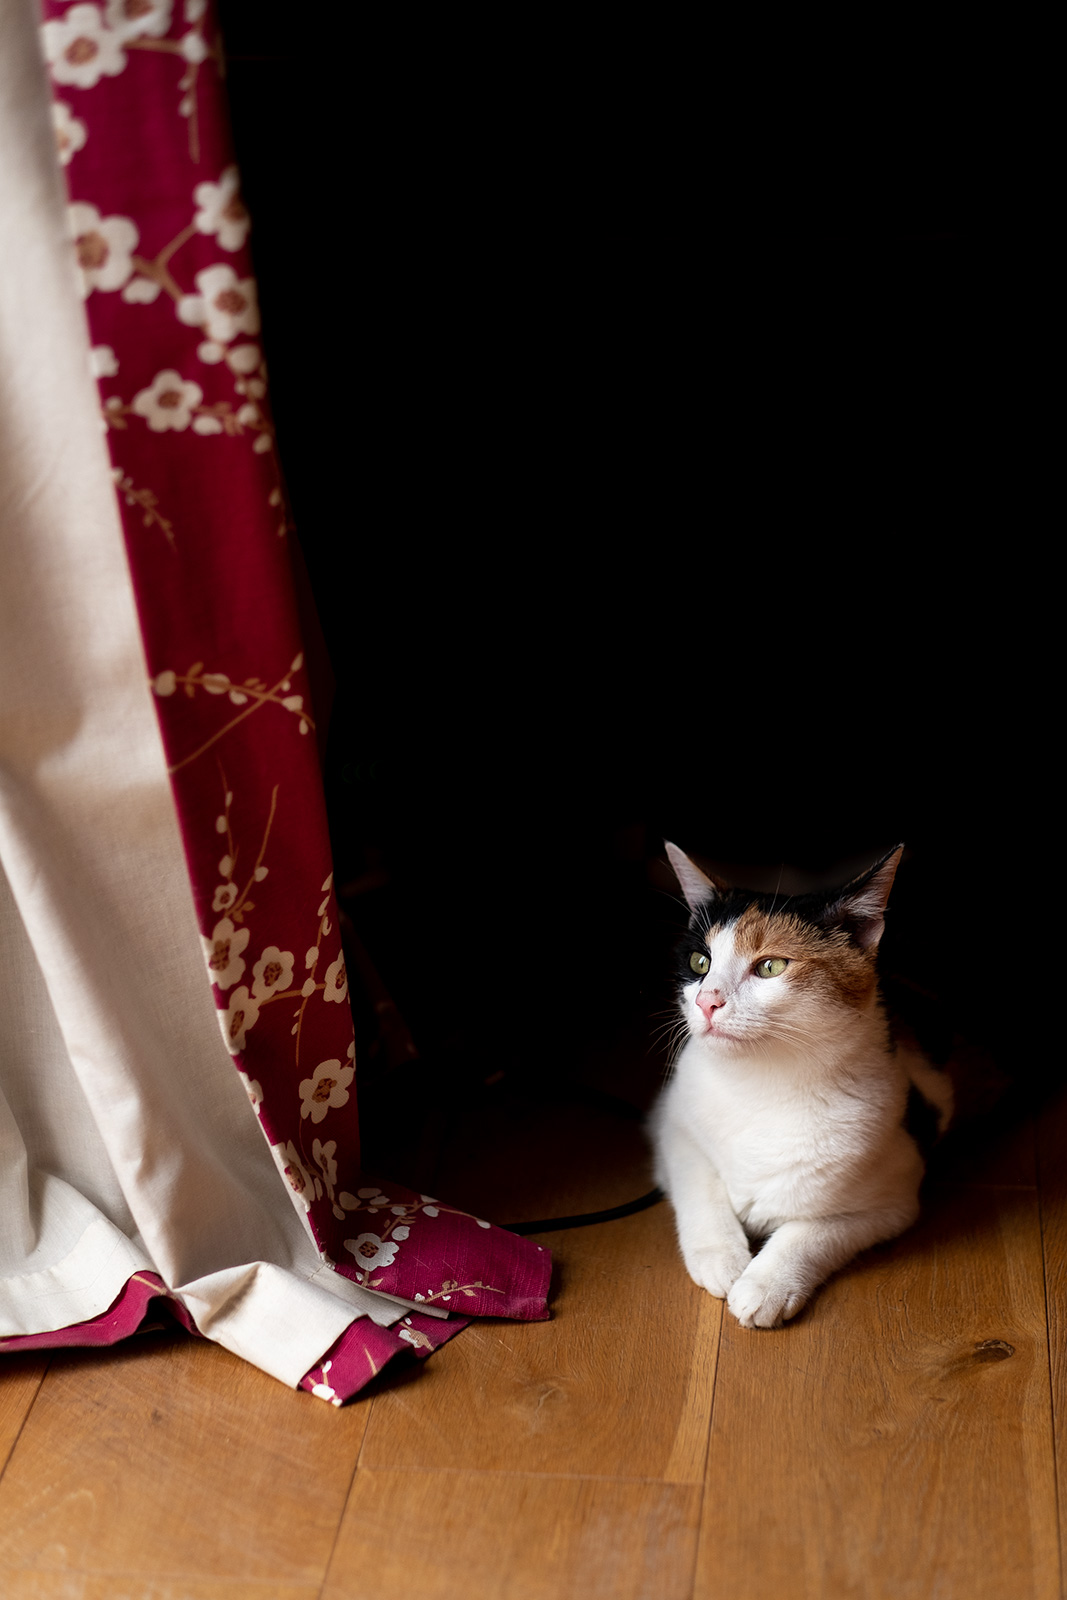 Black, white and ginger cat on wooden floor looking into light sitting by red curtain photograph P. Maton 2019 eyeteeth.net